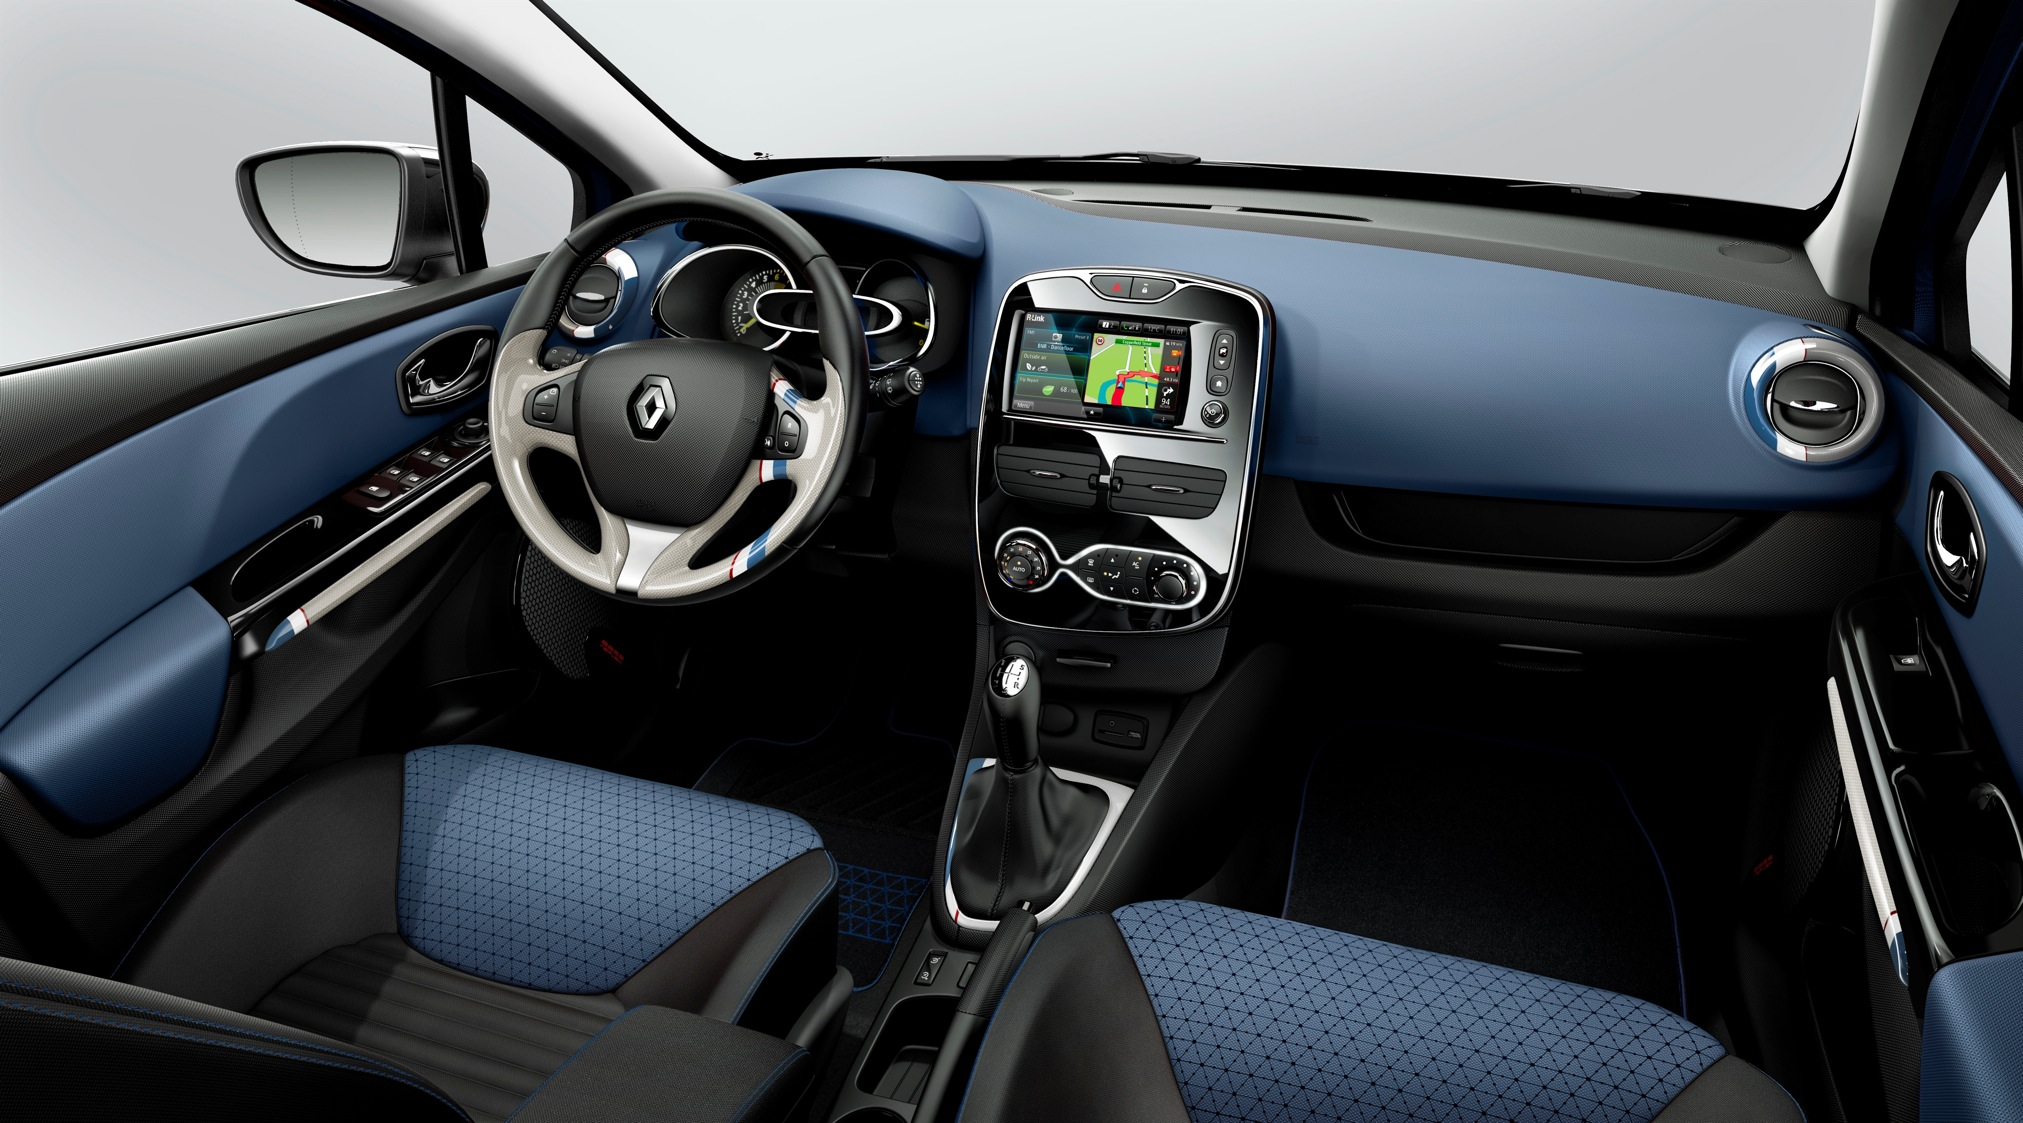 renault clio 5 doors specs 2012 2013 2014 2015. Black Bedroom Furniture Sets. Home Design Ideas